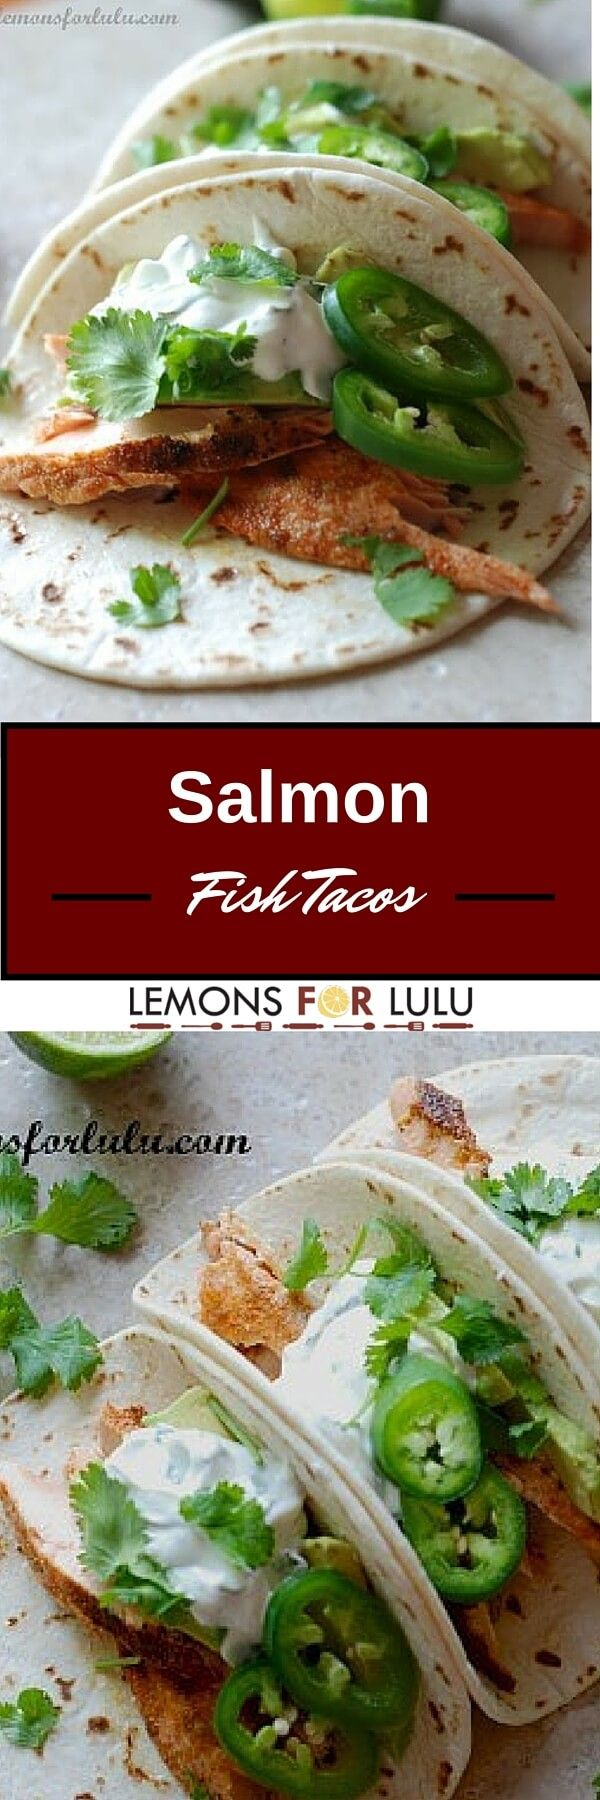 Seasoned salmon fish tacos topped with a creamy jalapeño crema and sliced jalapeños. This simple recipe is light but flavorful and is an easy summer recipe.